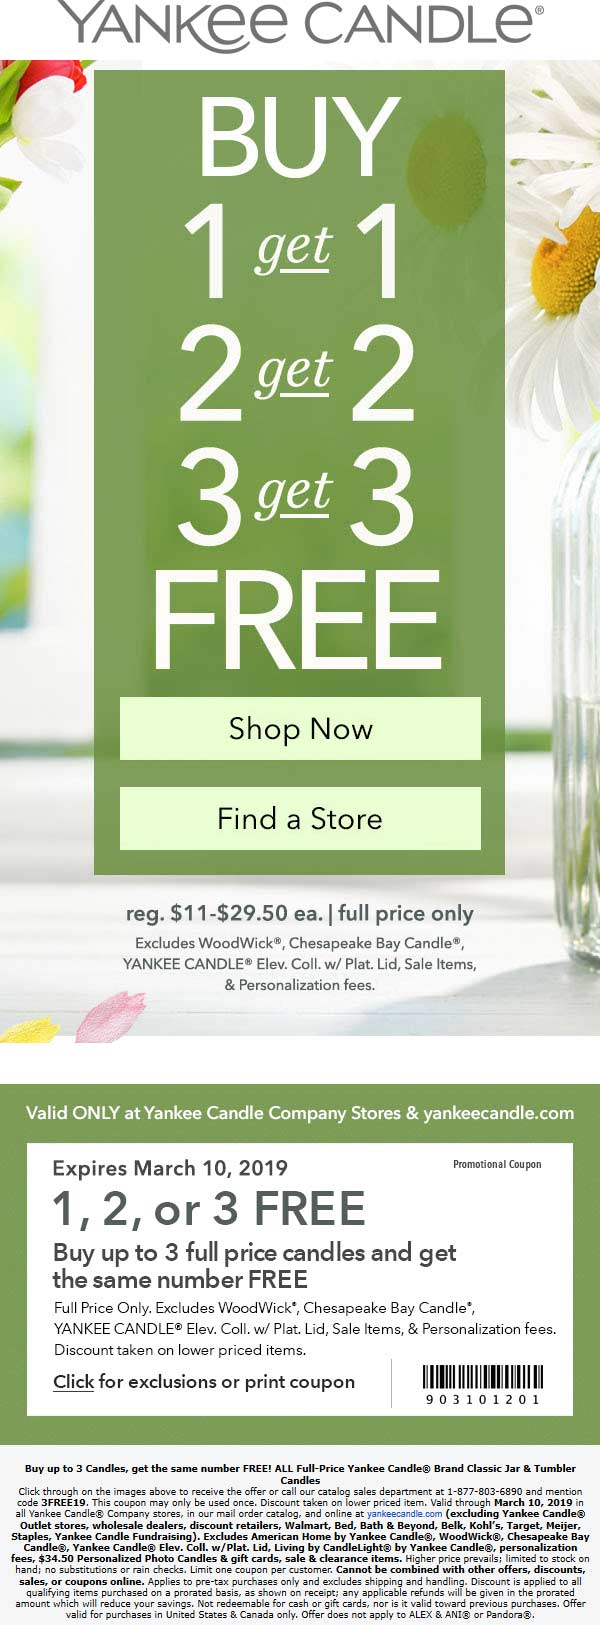 Yankee Candle Coupon November 2019 Second candle free at Yankee Candle, or online via promo code 3FREE19